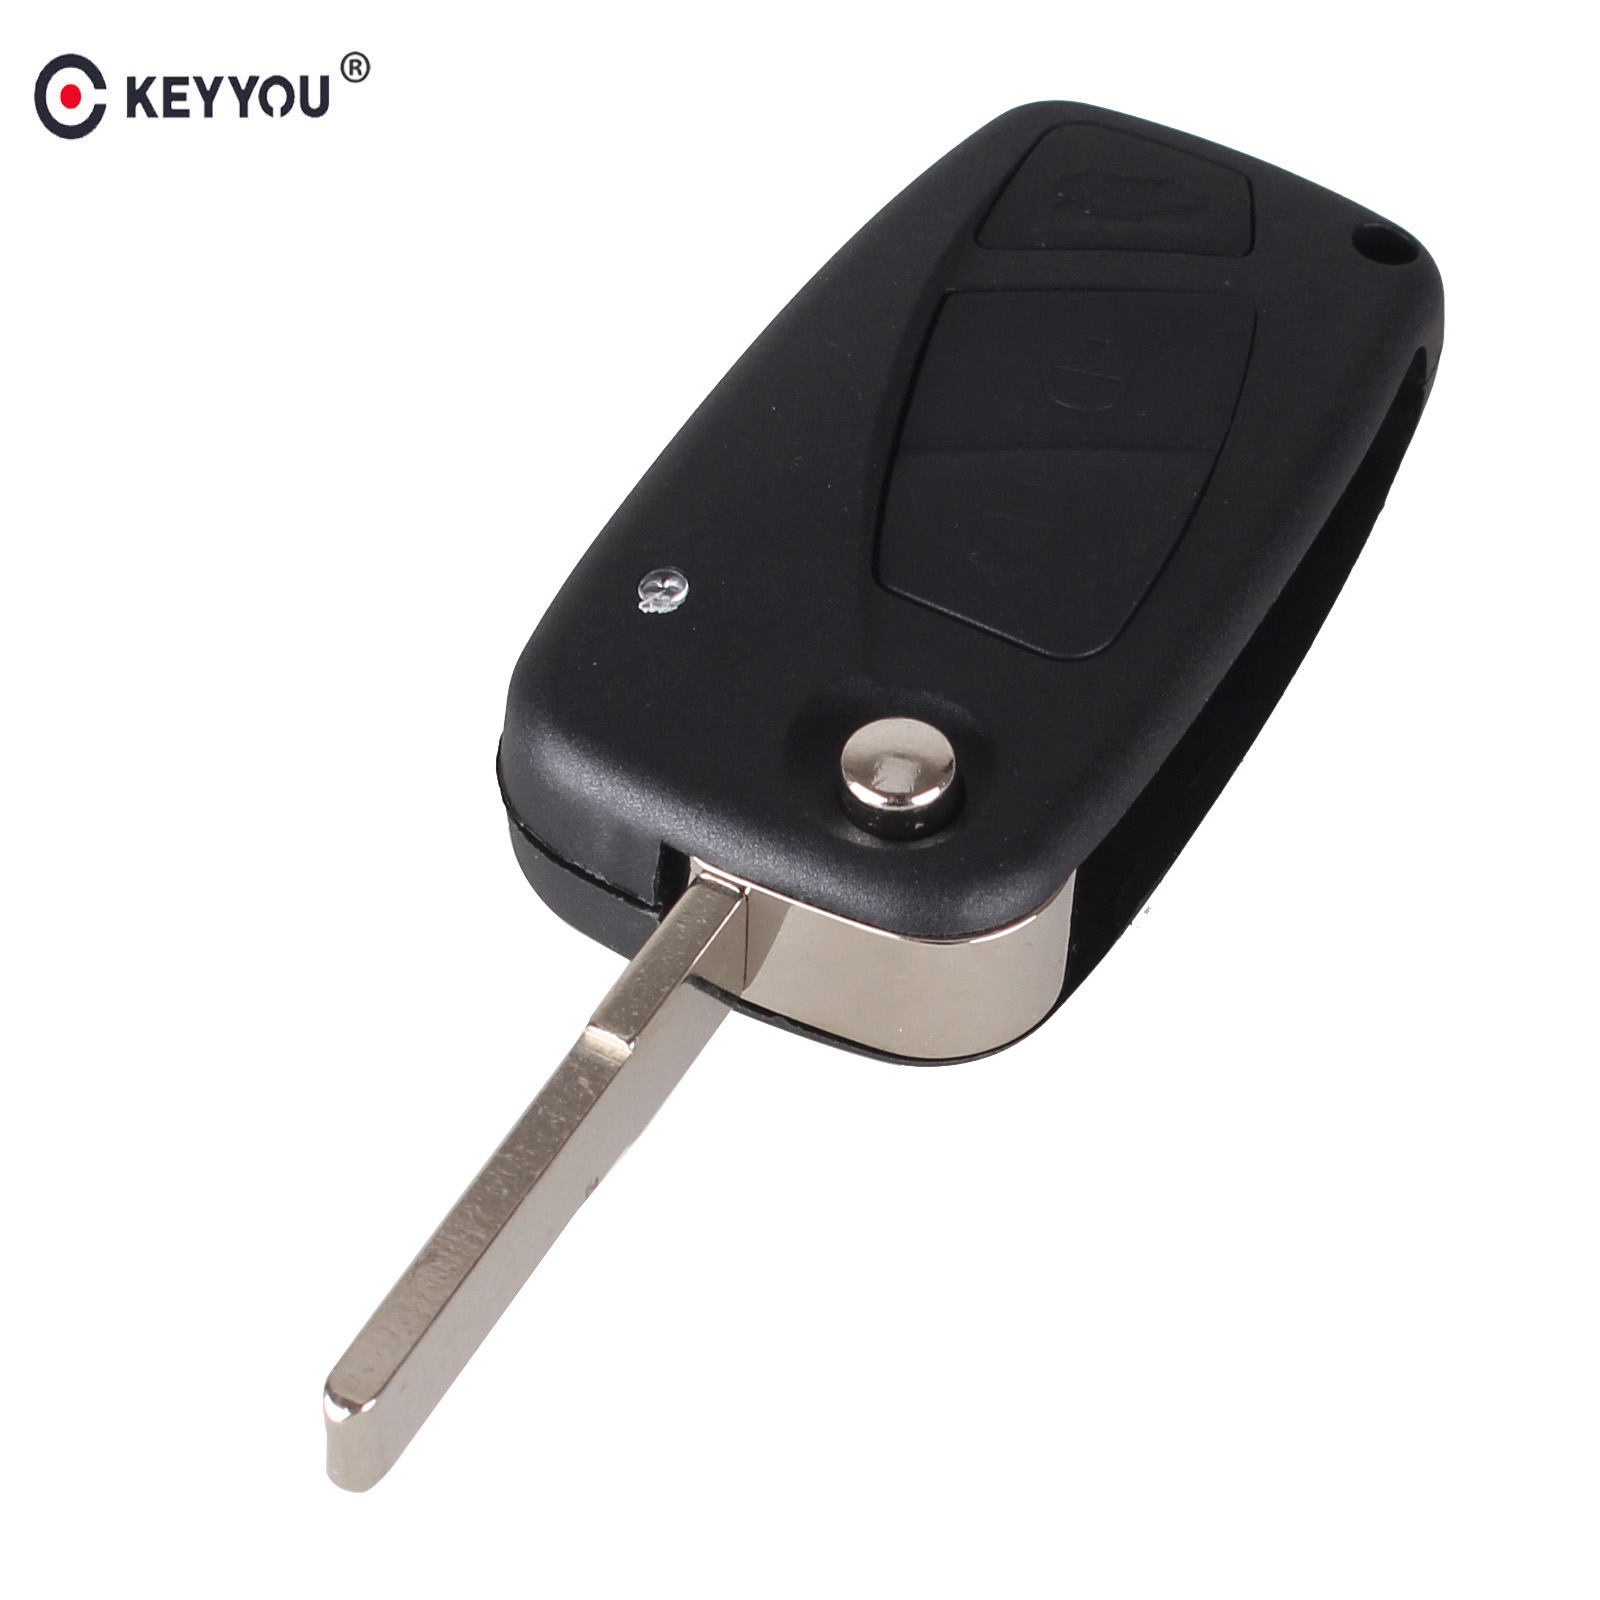 keyyou-new-3-button-3-btn-for-fiat-3-button-punto-ducato-stilo-panda-flip-folding-remote-car-key-shell-case-cover-sip22-blade